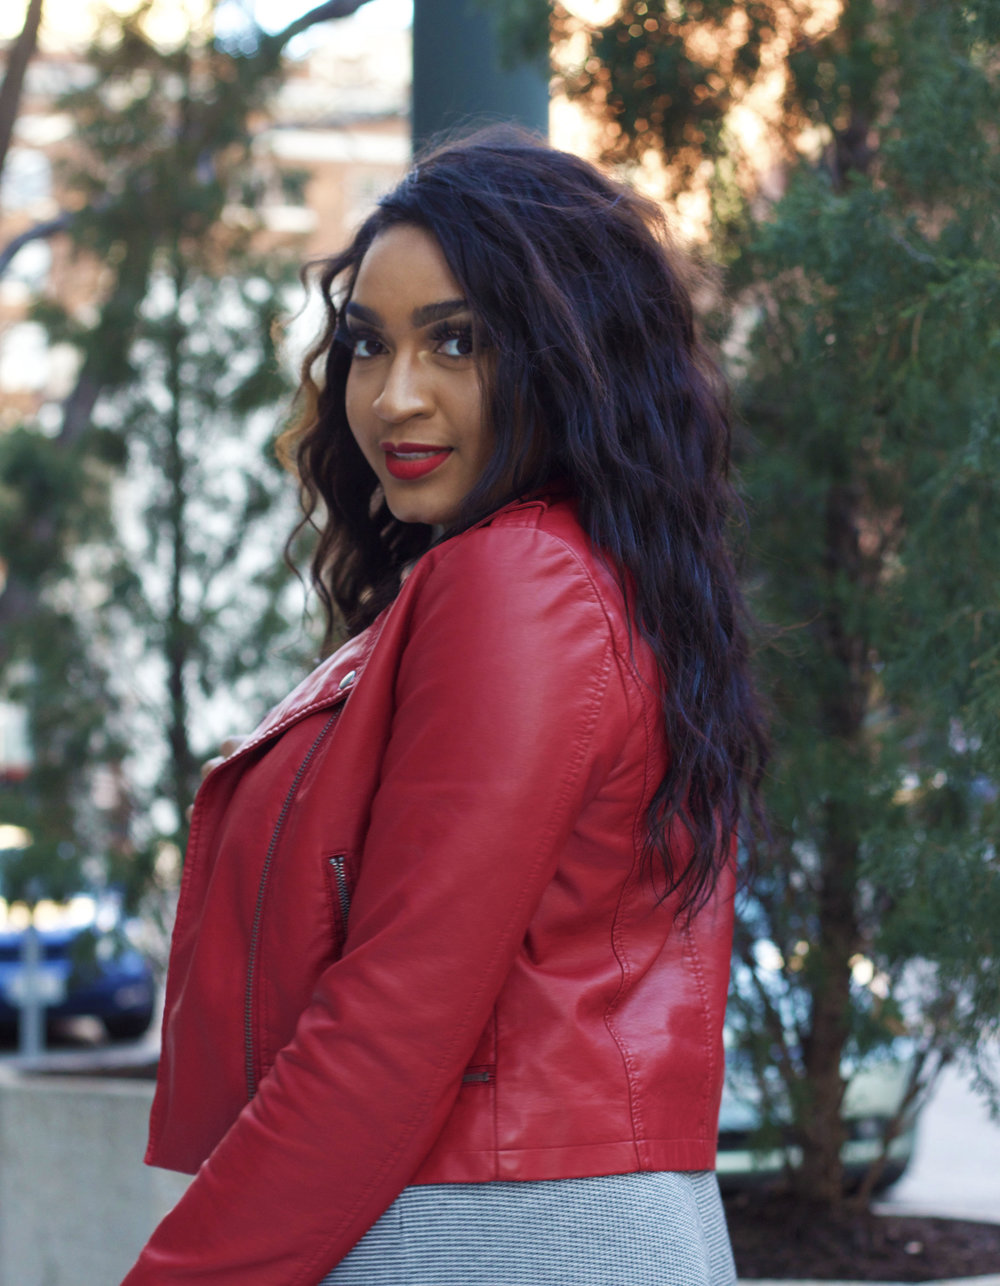 Jasmine Diane in red moto jacket from Forever21 in downtown kansas city.jpg